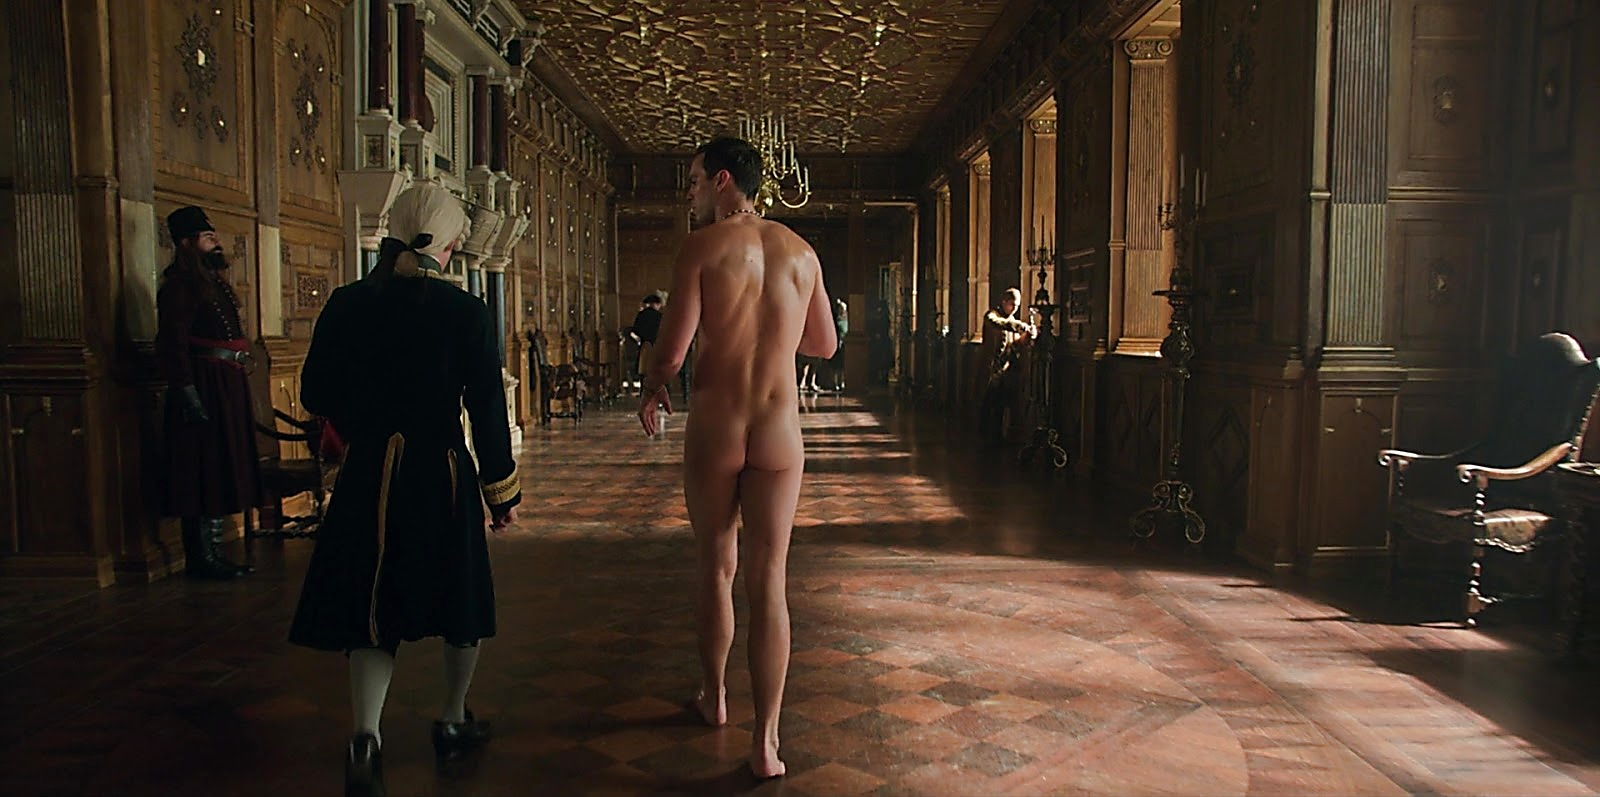 Nicholas Hoult sexy shirtless scene May 16, 2020, 1pm